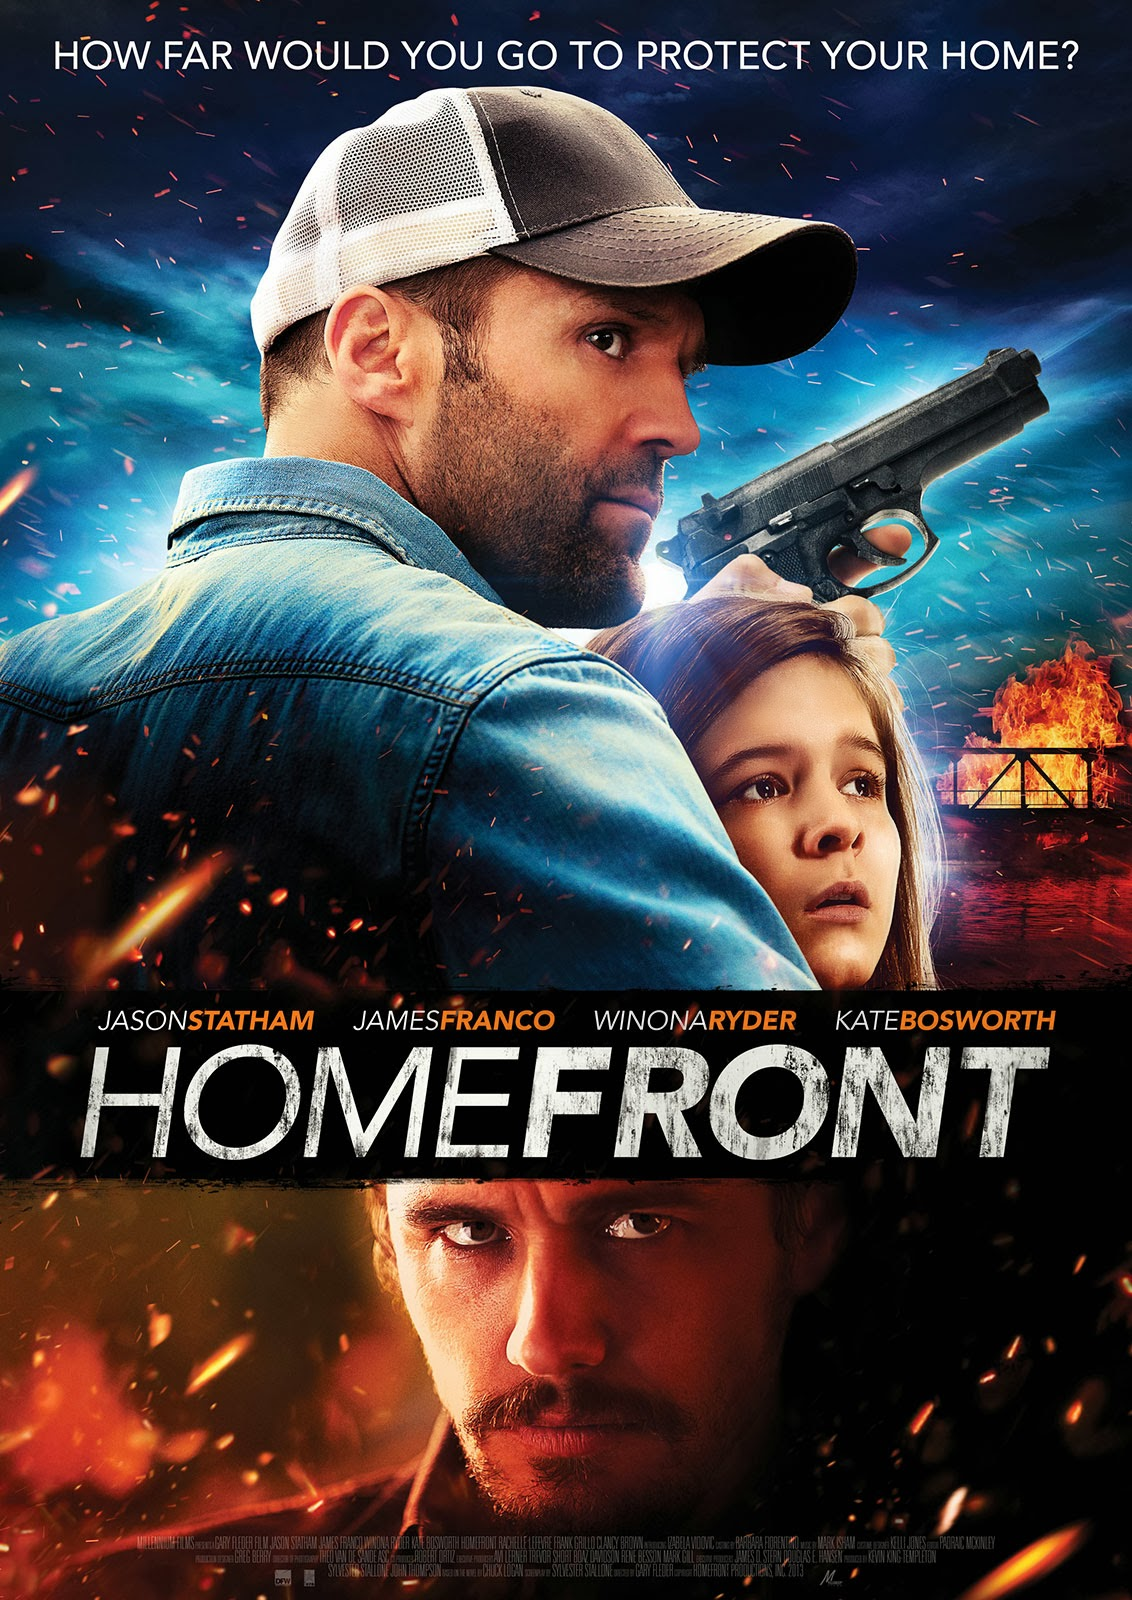 Homefront (2013) | Apocalyptic Demise